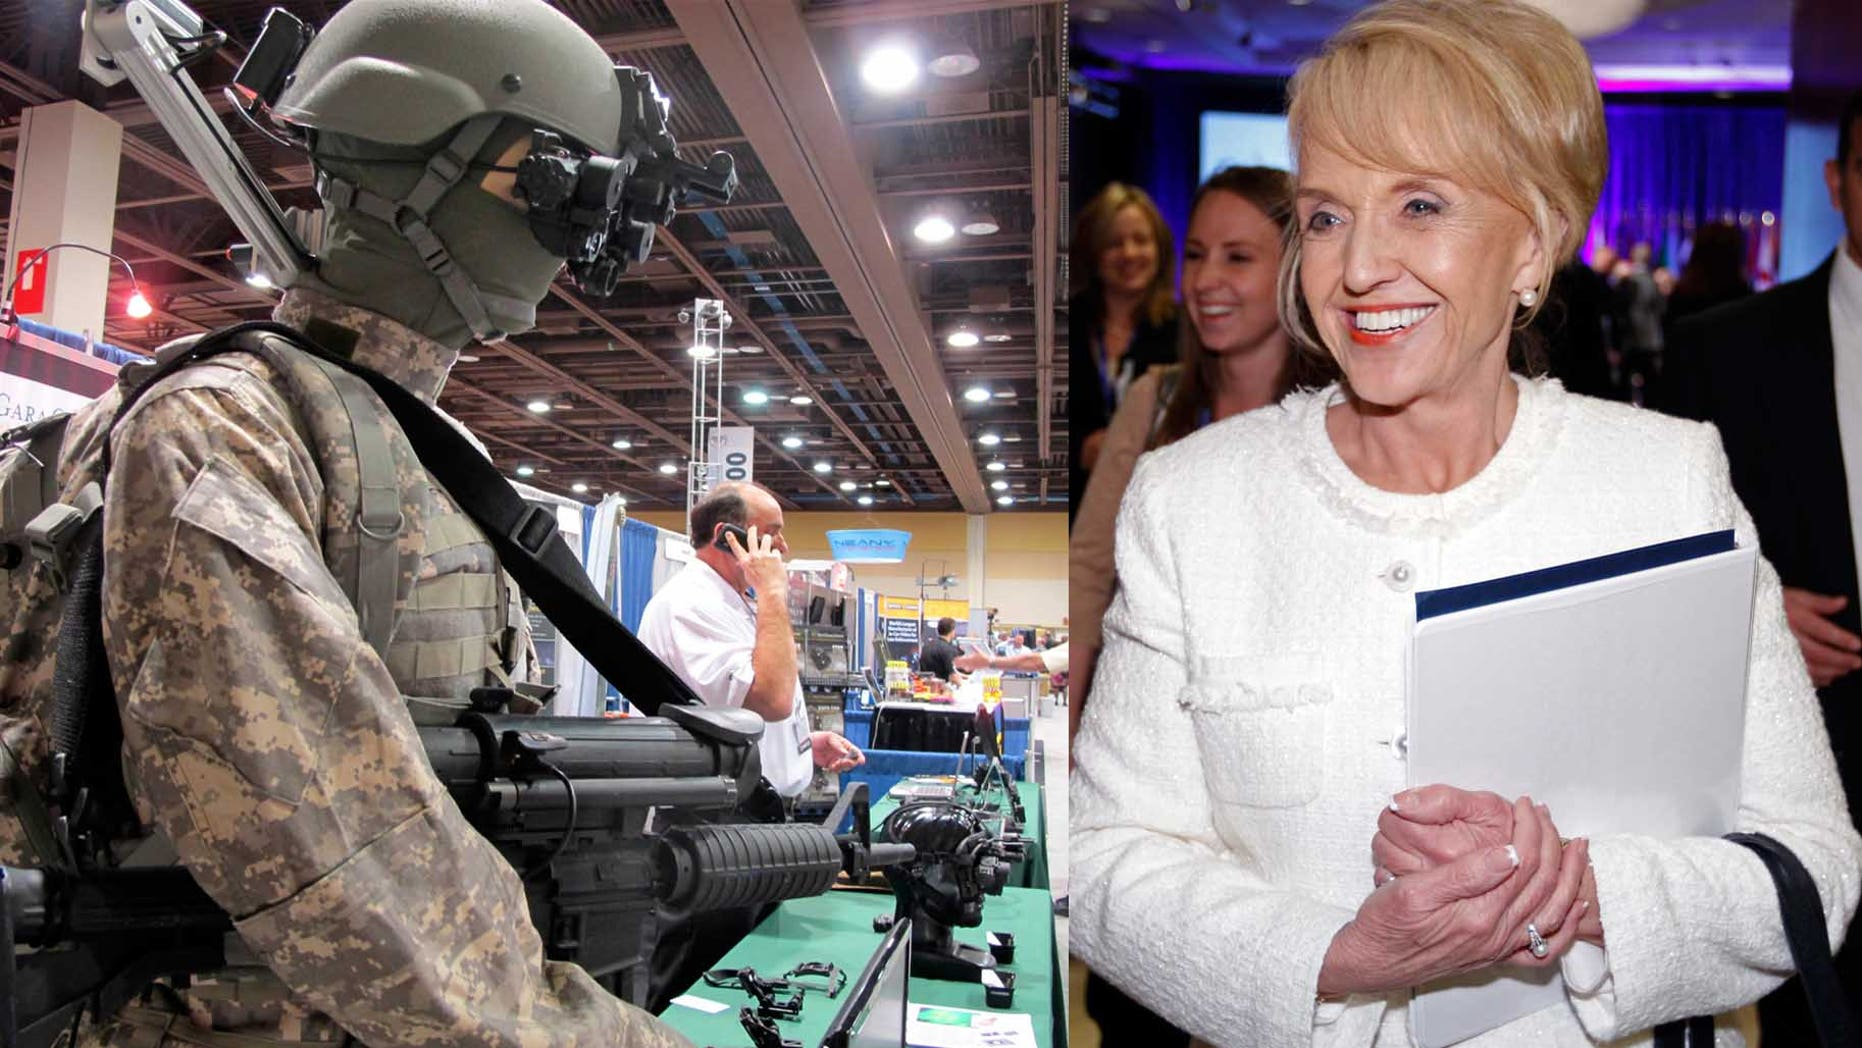 A piece of new technology at the Border Expo pictured left. Arizona Governor Jan Brewer pictured at the right. (FILE PHOTO)